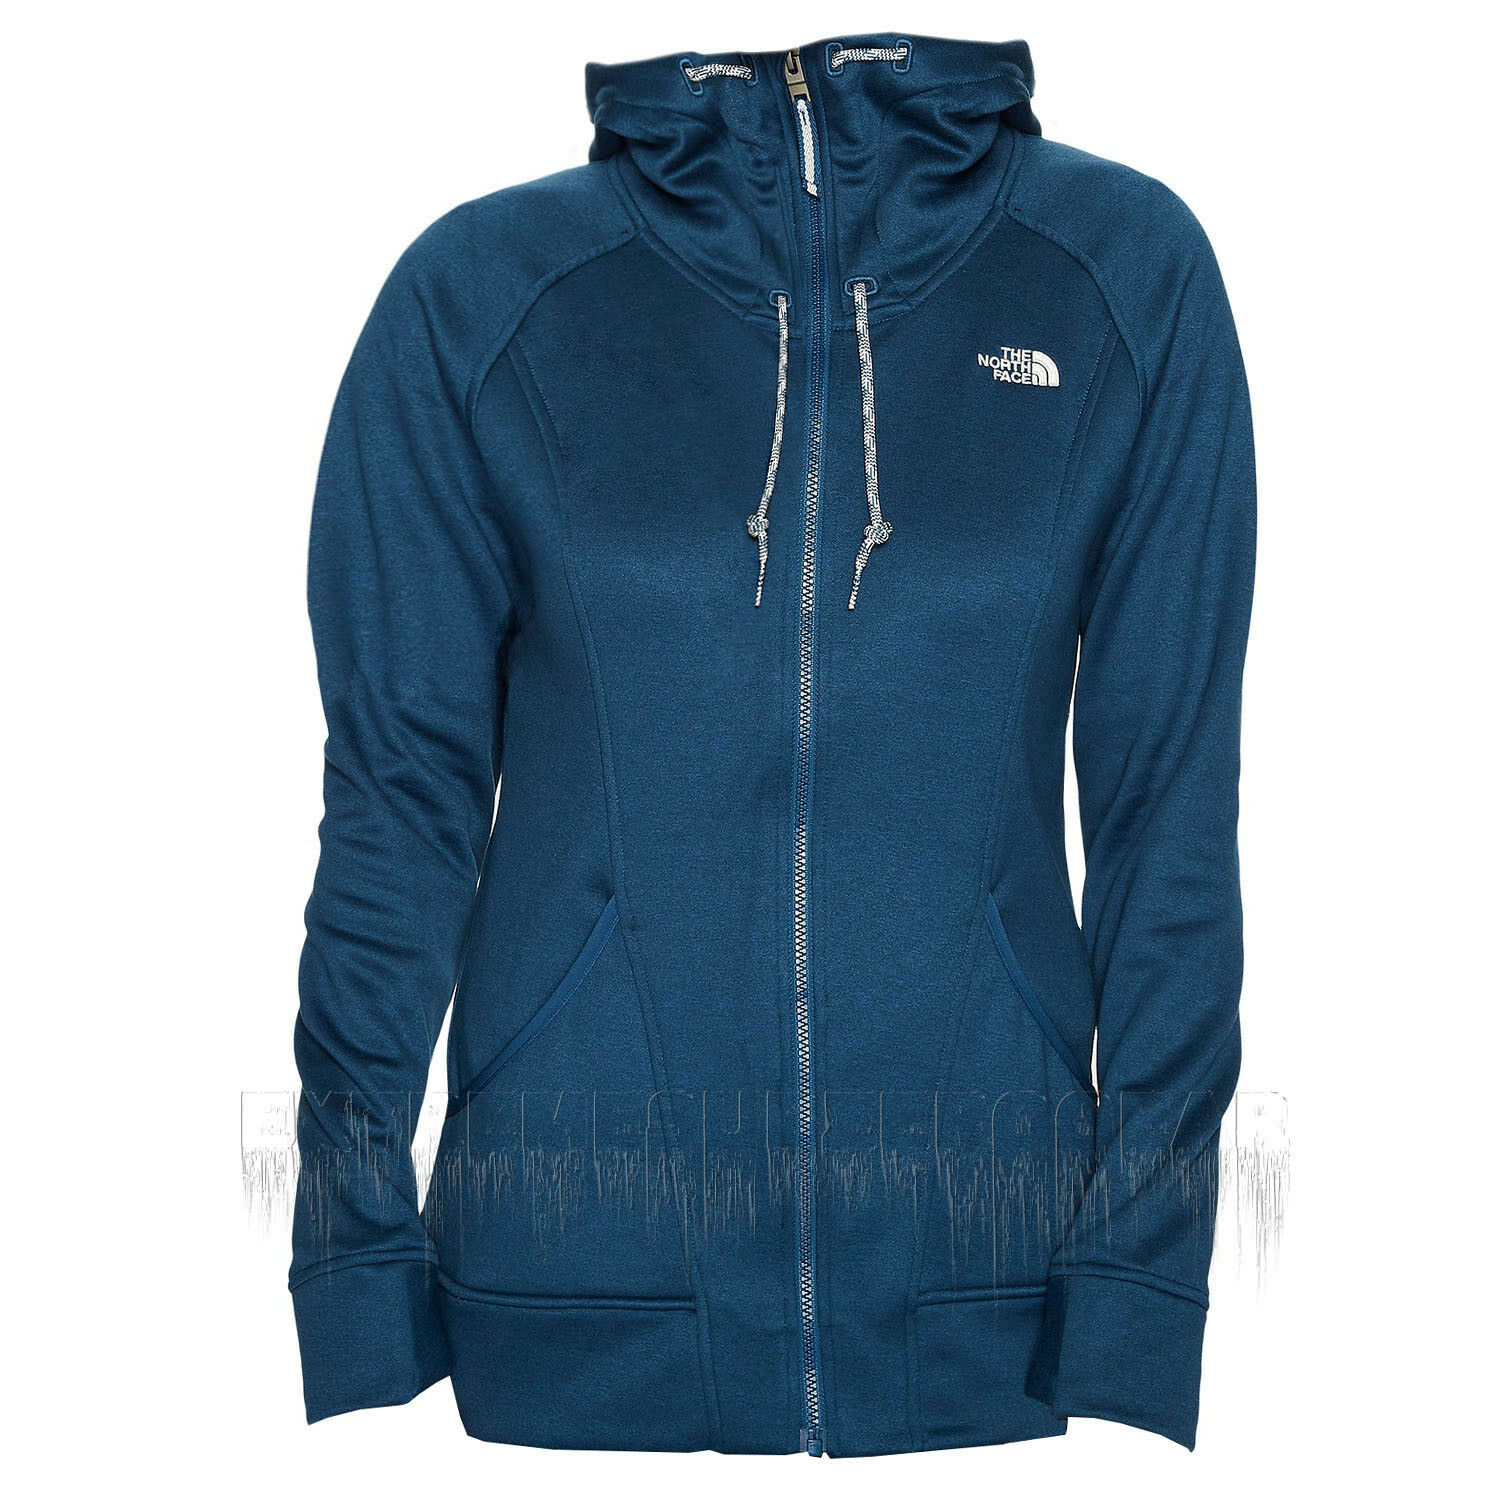 THE NORTH FACE Womens 2018 SHELLY FLEECE HOODIE Monterey bluee